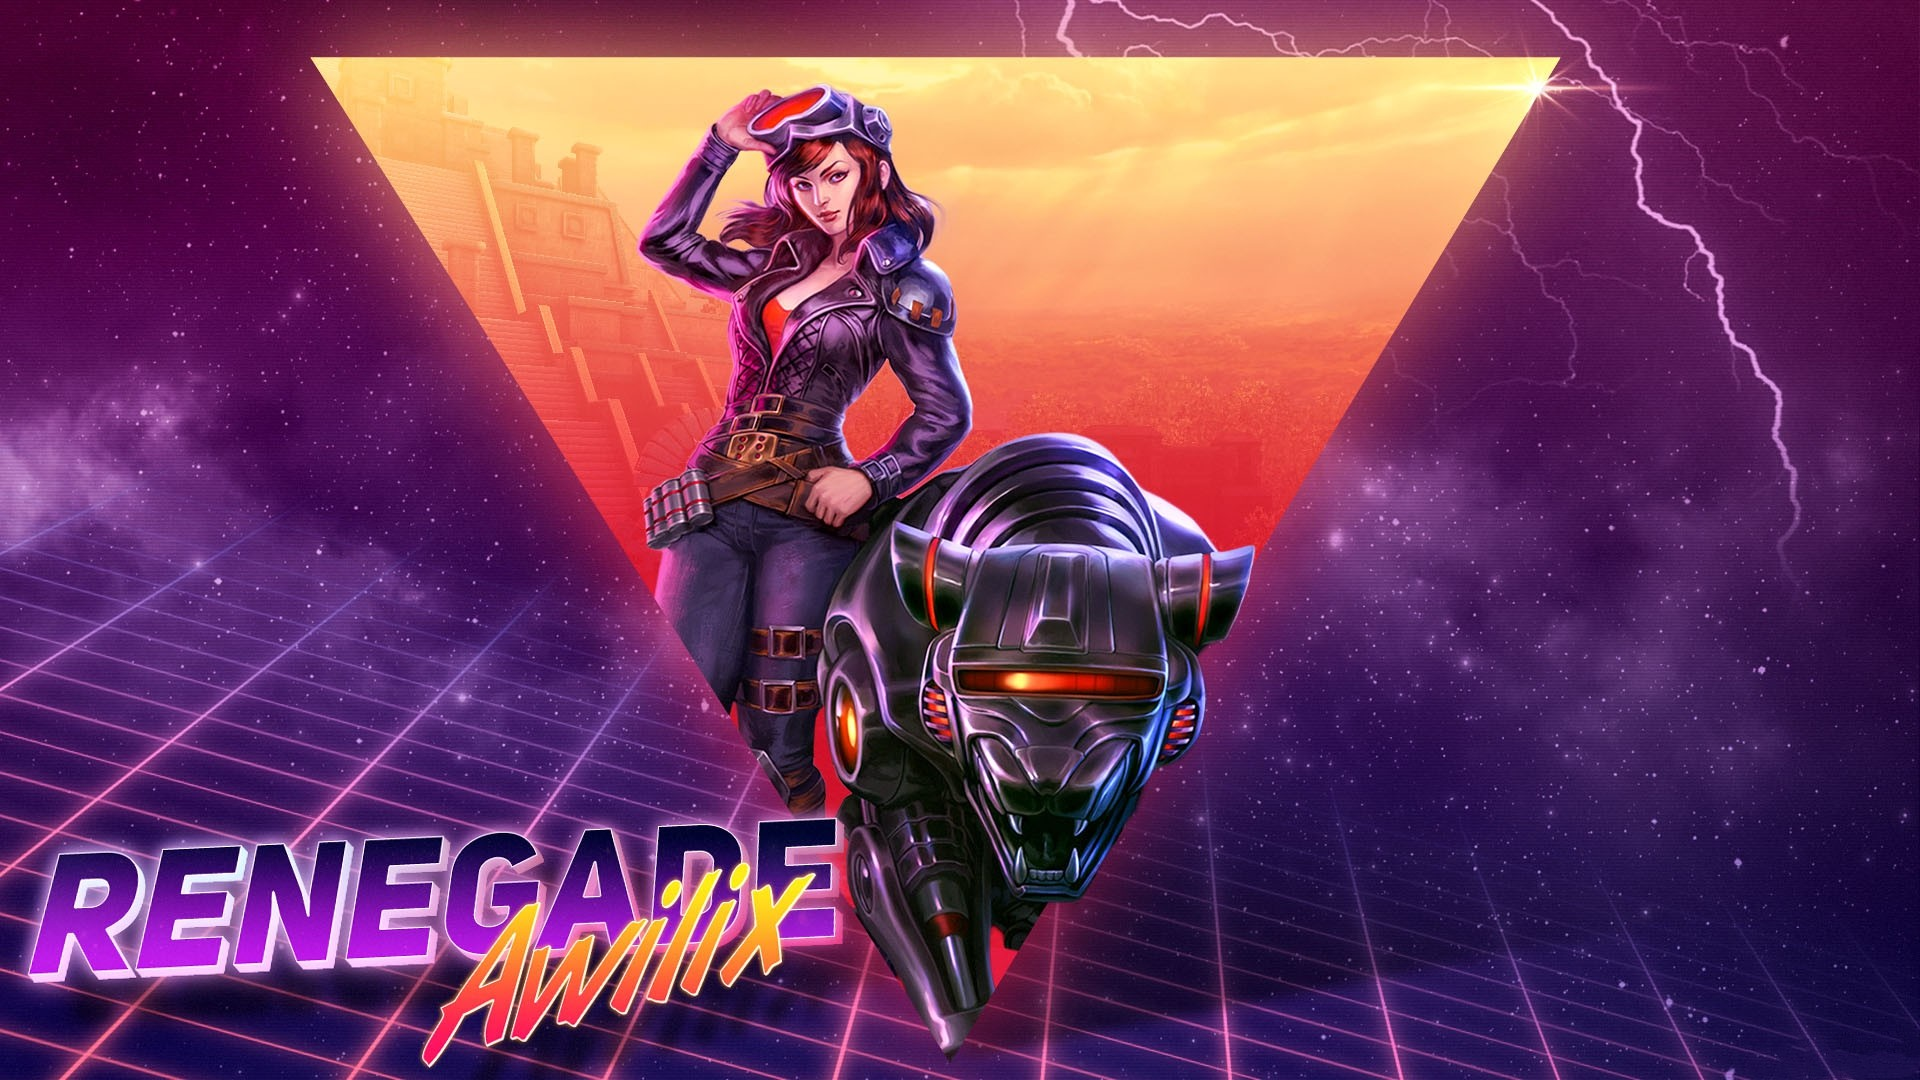 80s hd wallpaper desktop wallpapers high definition background photos  download free apple display picture 1920×1080